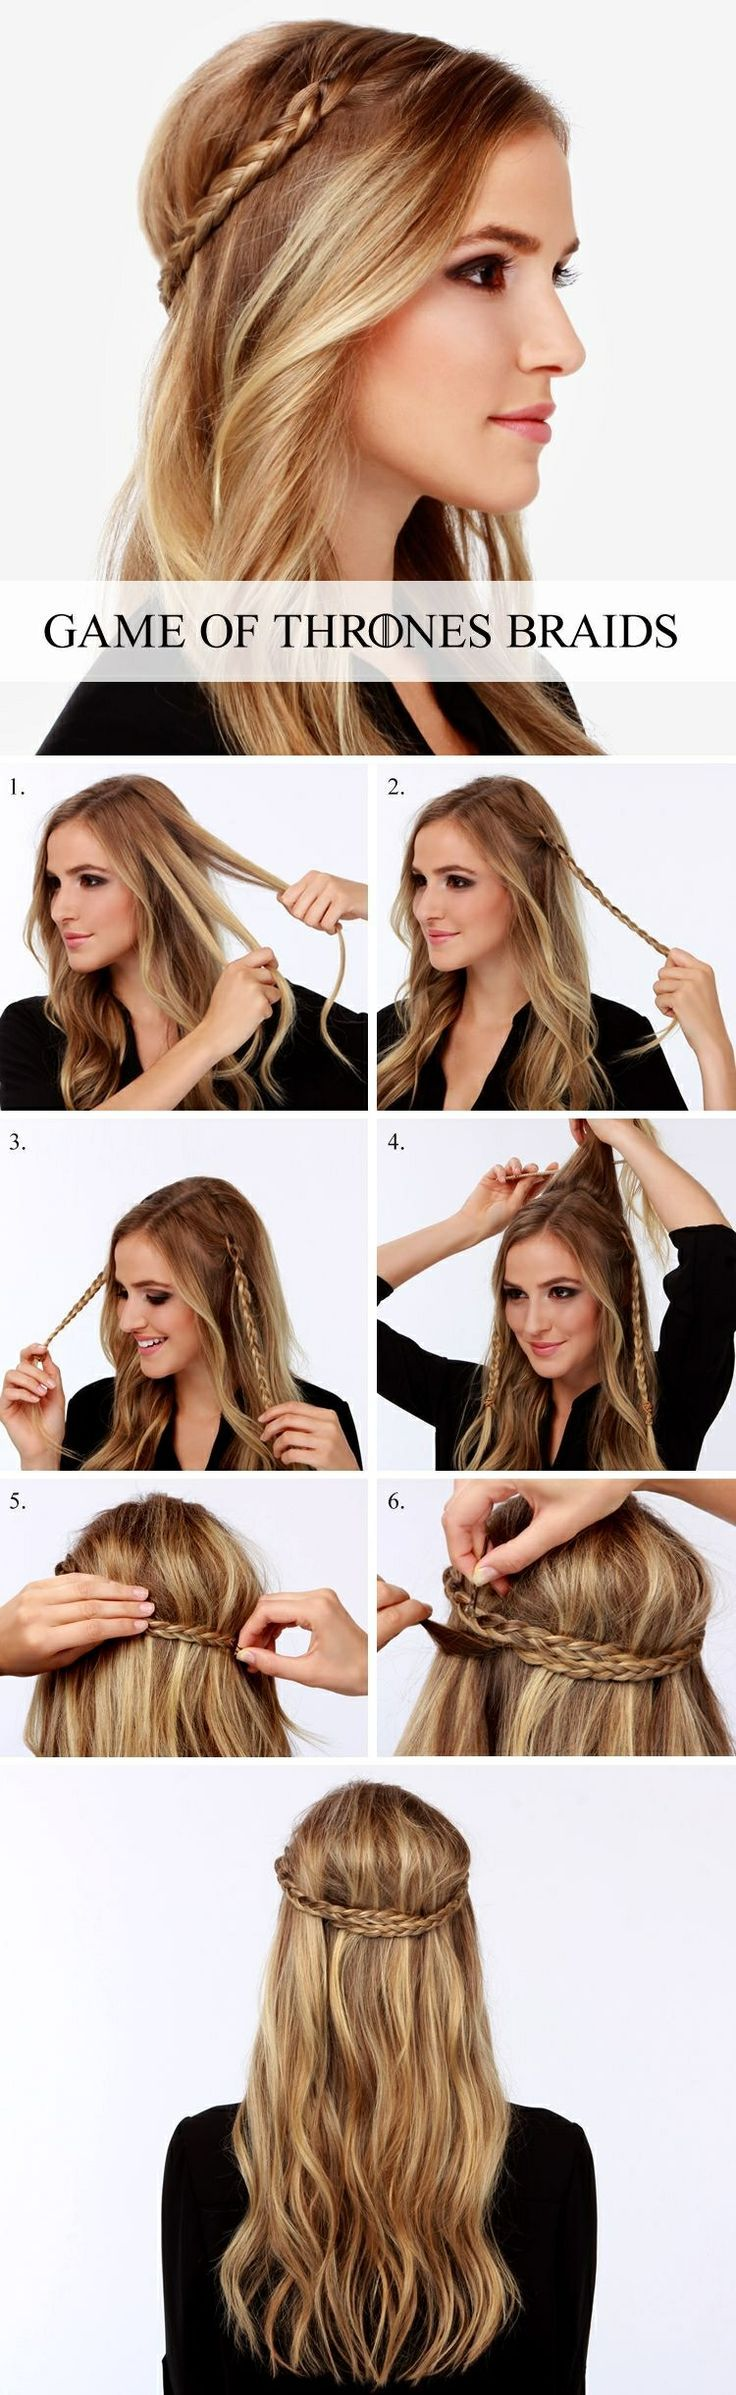 Pin by amani hassoun on hair pinterest hair style makeup and